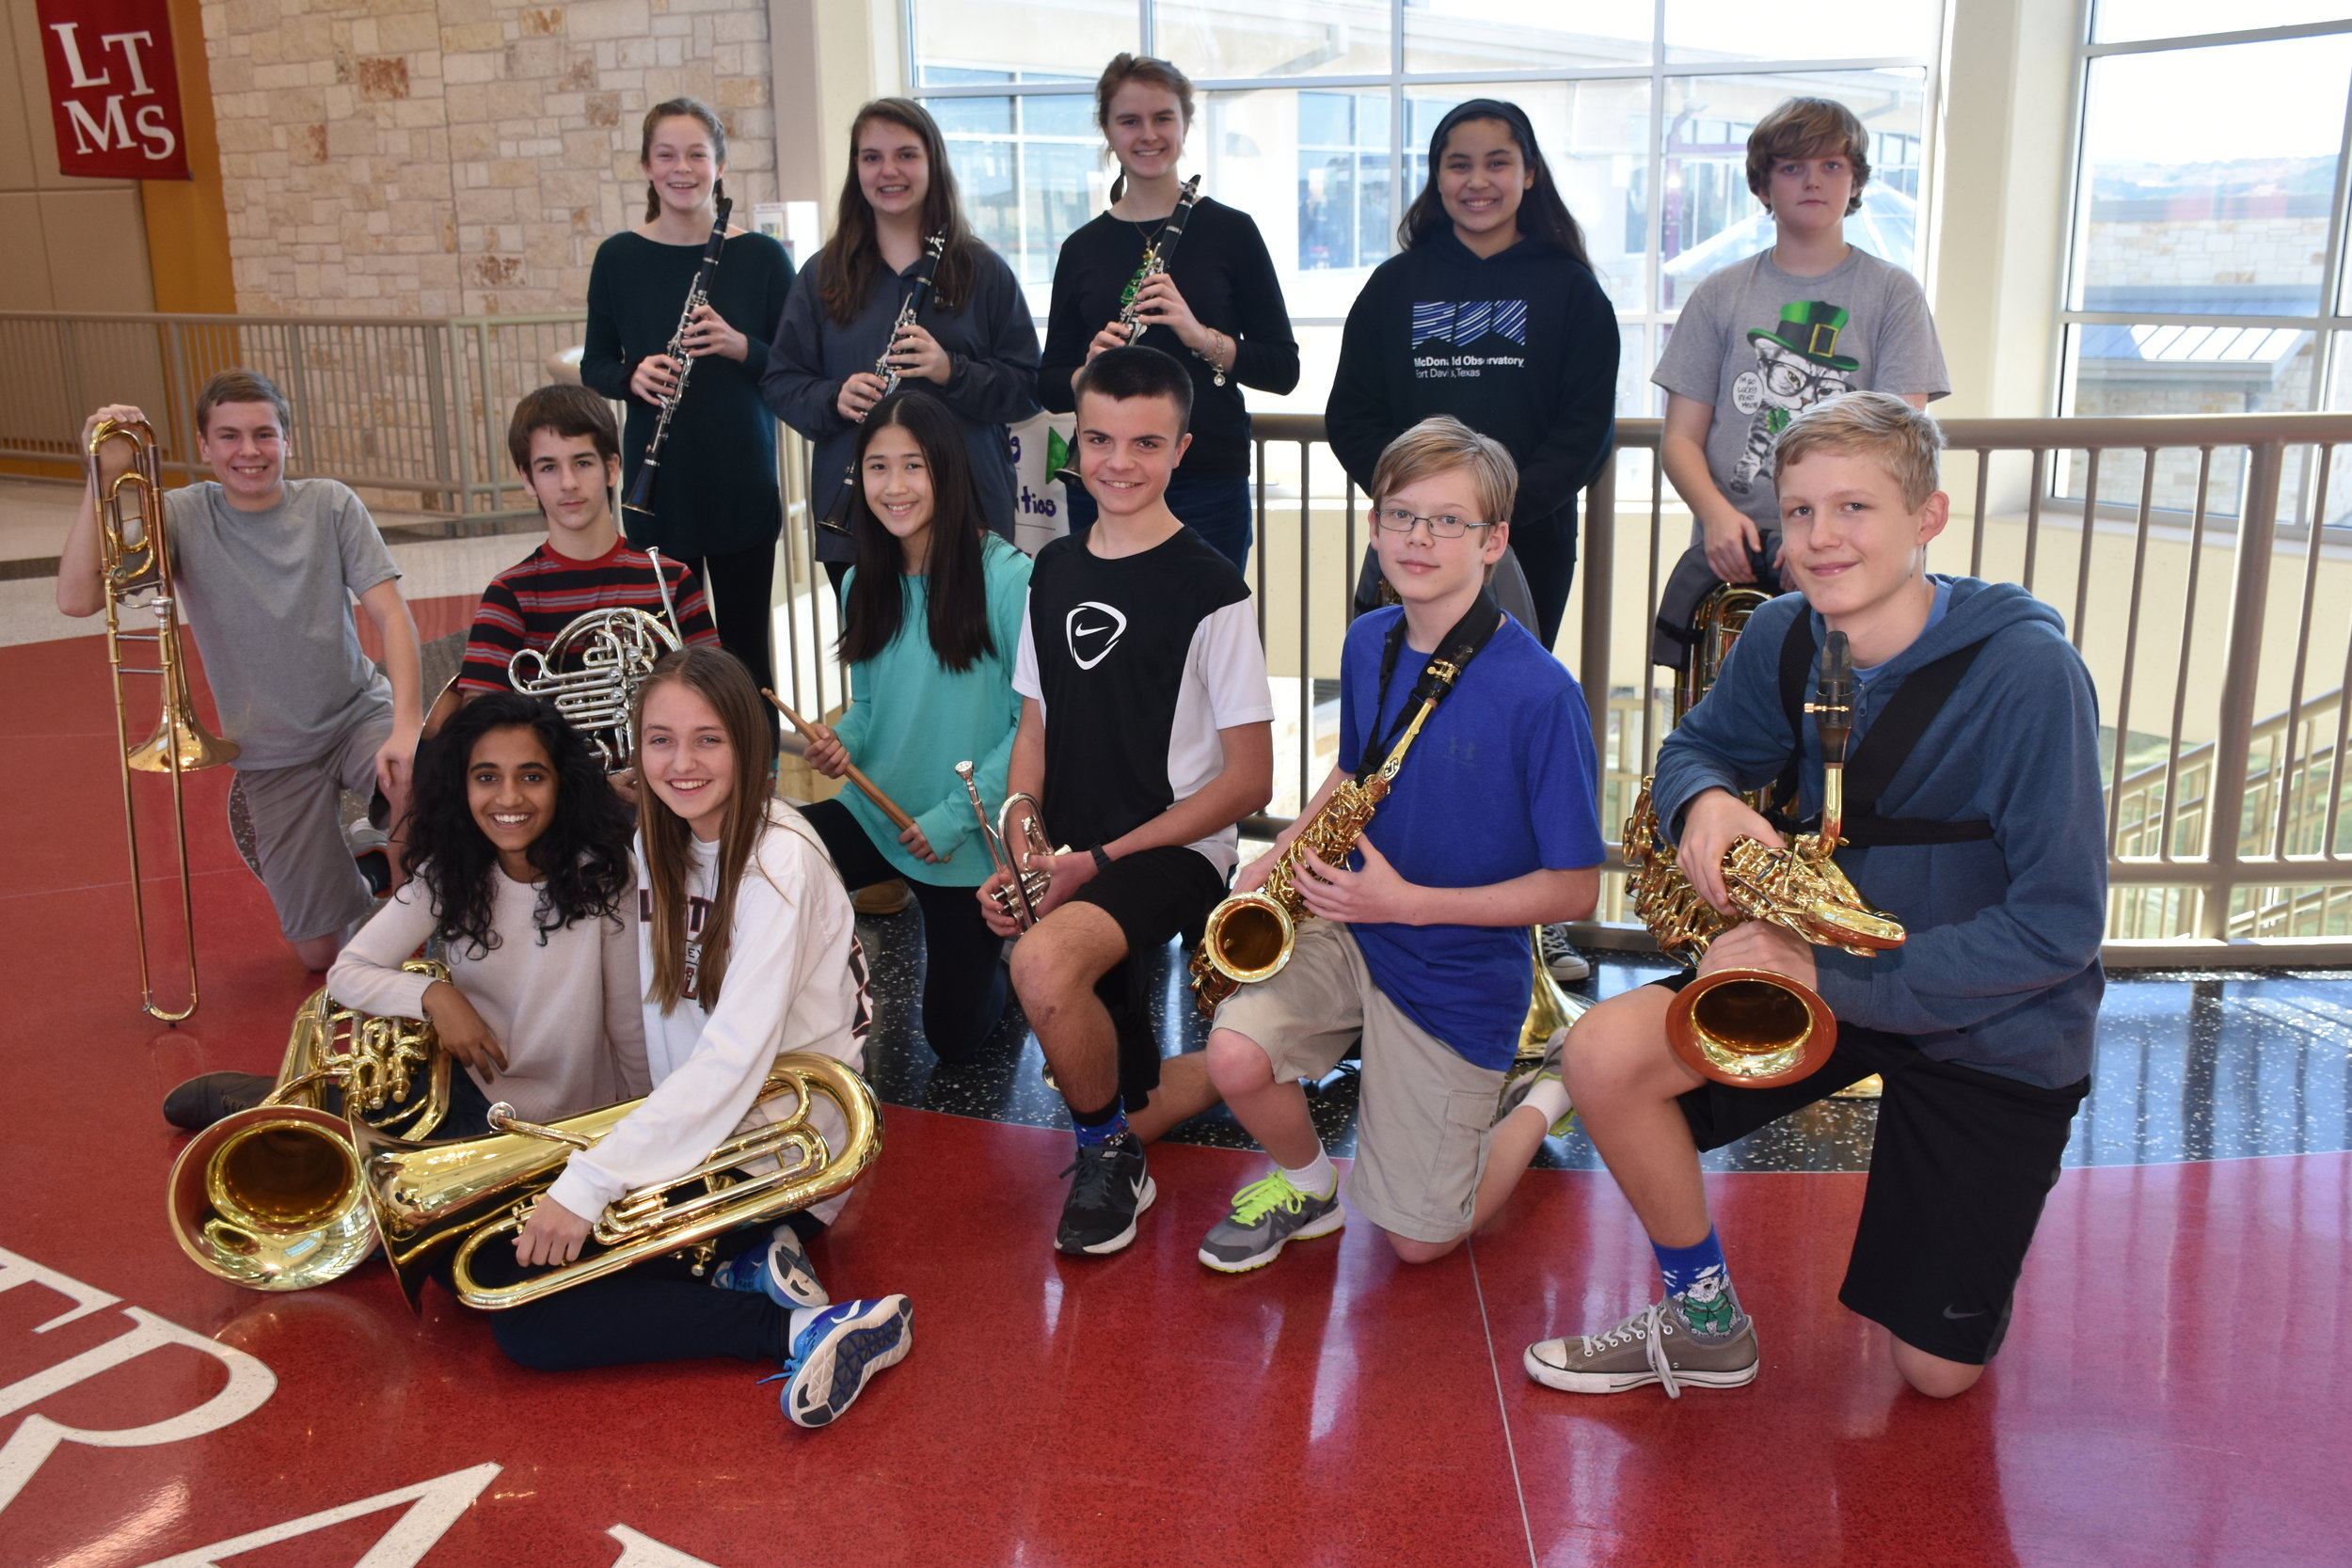 Lake Travis Middle School   TMEA Region 32 All-District band members:  Brynn Messersmith ,  Sydney Morto  n ,  Tania Waldo ,  Jaszmine DeFranco ,  Marshall Westbery ,  Carter Rochford ,  Matthew Andersen ,  Joyce Luo ,  Brennan Chlebos ,  Jack Woodruff ,  Jack Court  s ,  Ananya Pandey , and  Carrie Smith